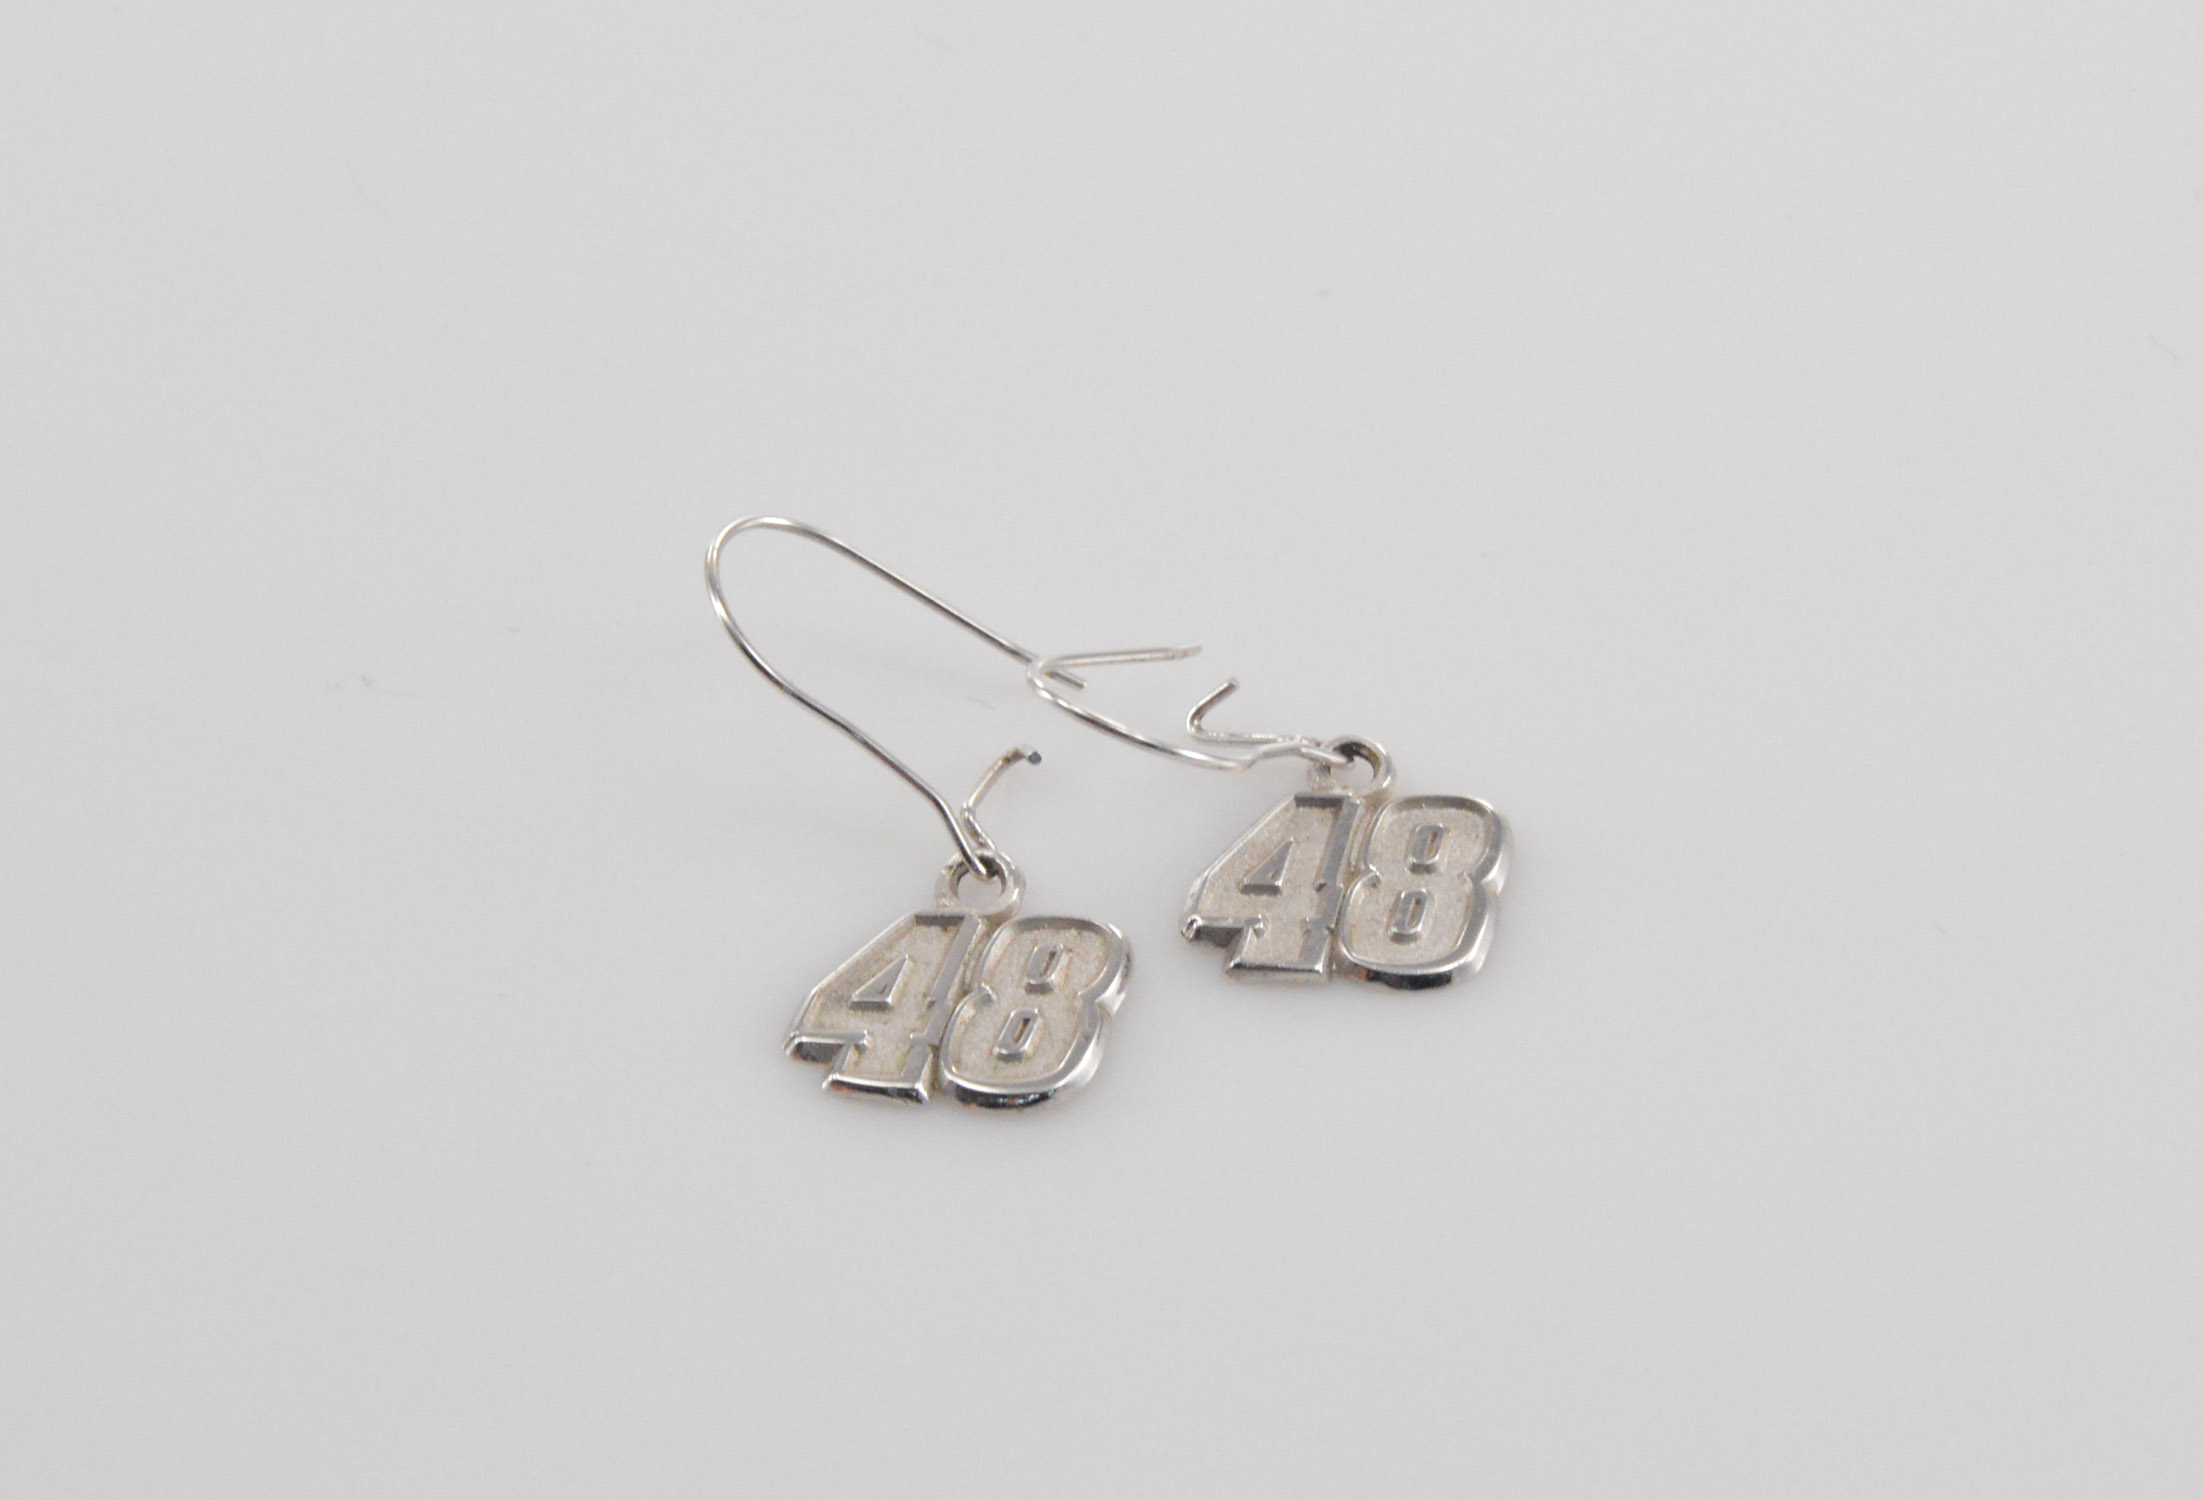 Solid Silver Jimmie Johnson Nascar 48 Sterling 1 3g Earrings Marked 925